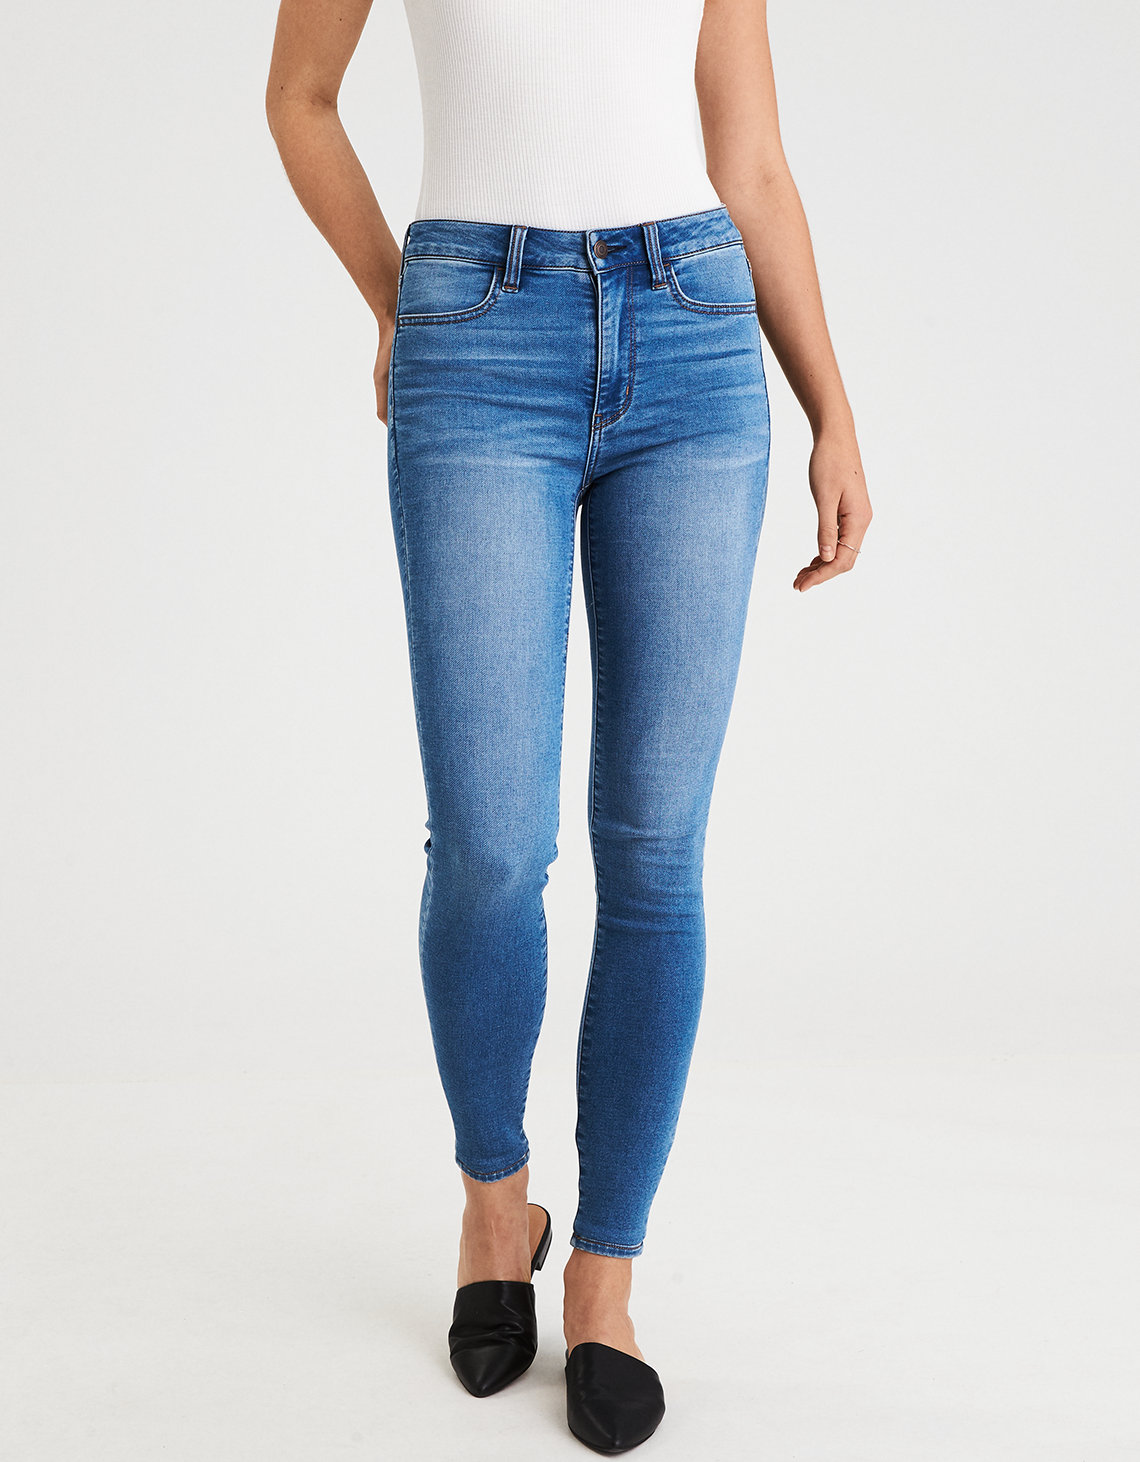 3f9ac9f17c AE Super Soft Super High-Waisted Jegging